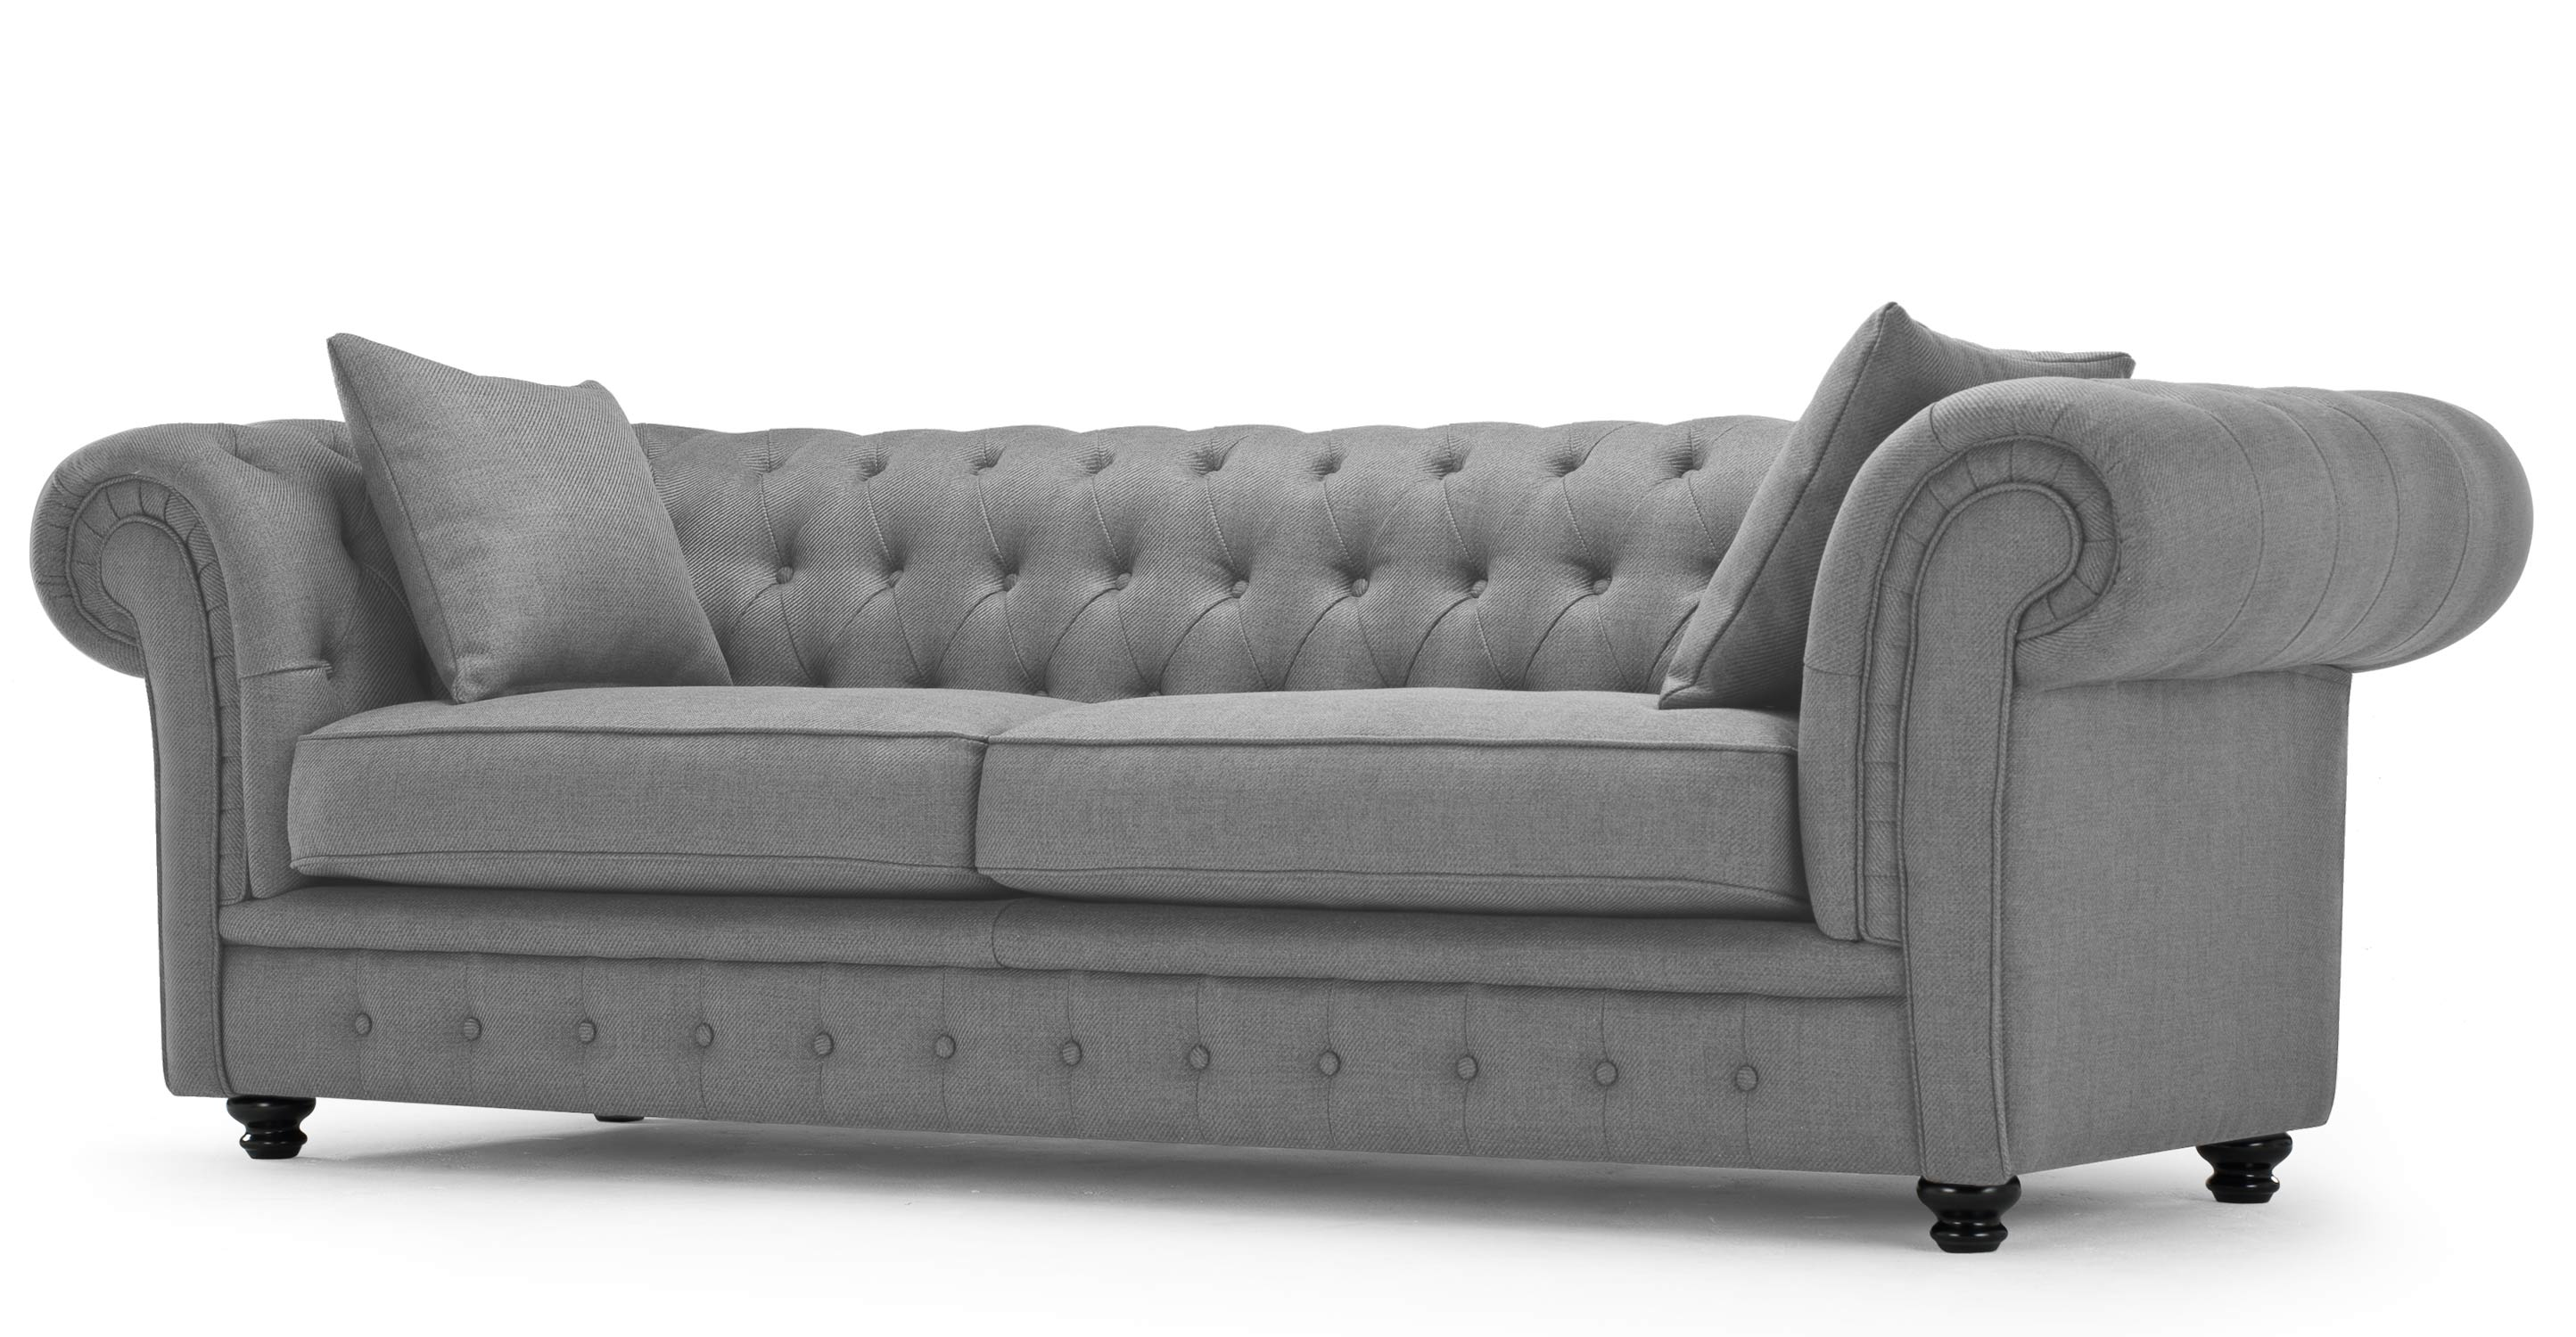 branagh 3 seater grey chesterfield sofa. Black Bedroom Furniture Sets. Home Design Ideas